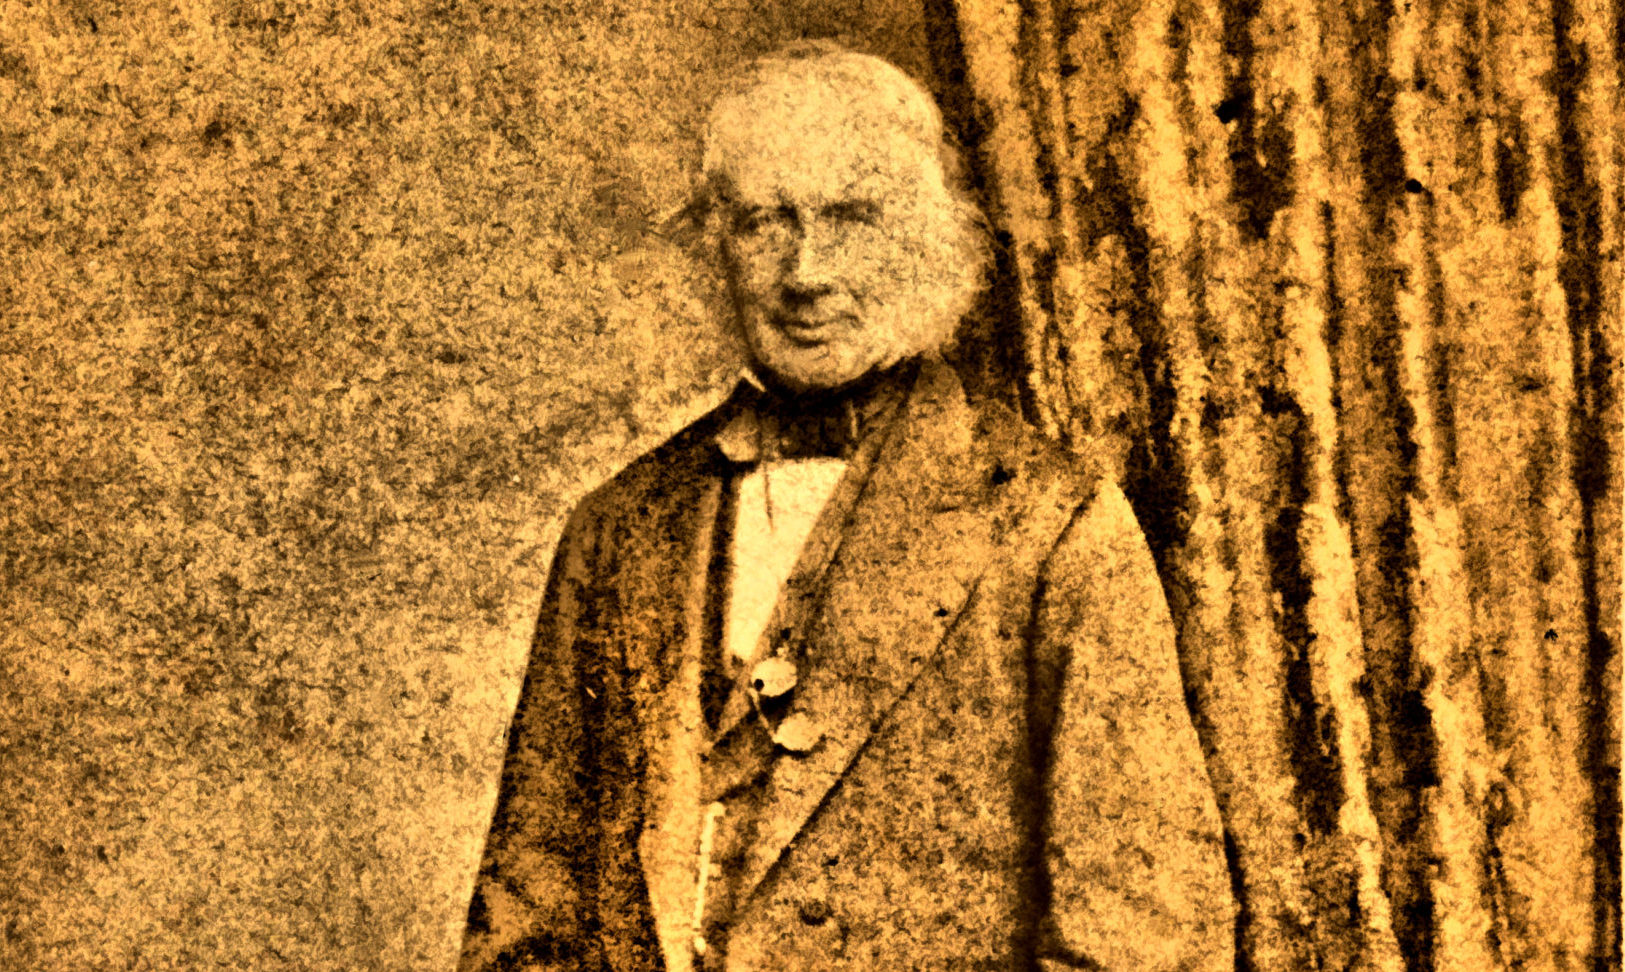 Robert Davidson's family found this sepia-tinted portrait of the Aberdonian inventor, dating from the 1870s, hidden in a drawer.